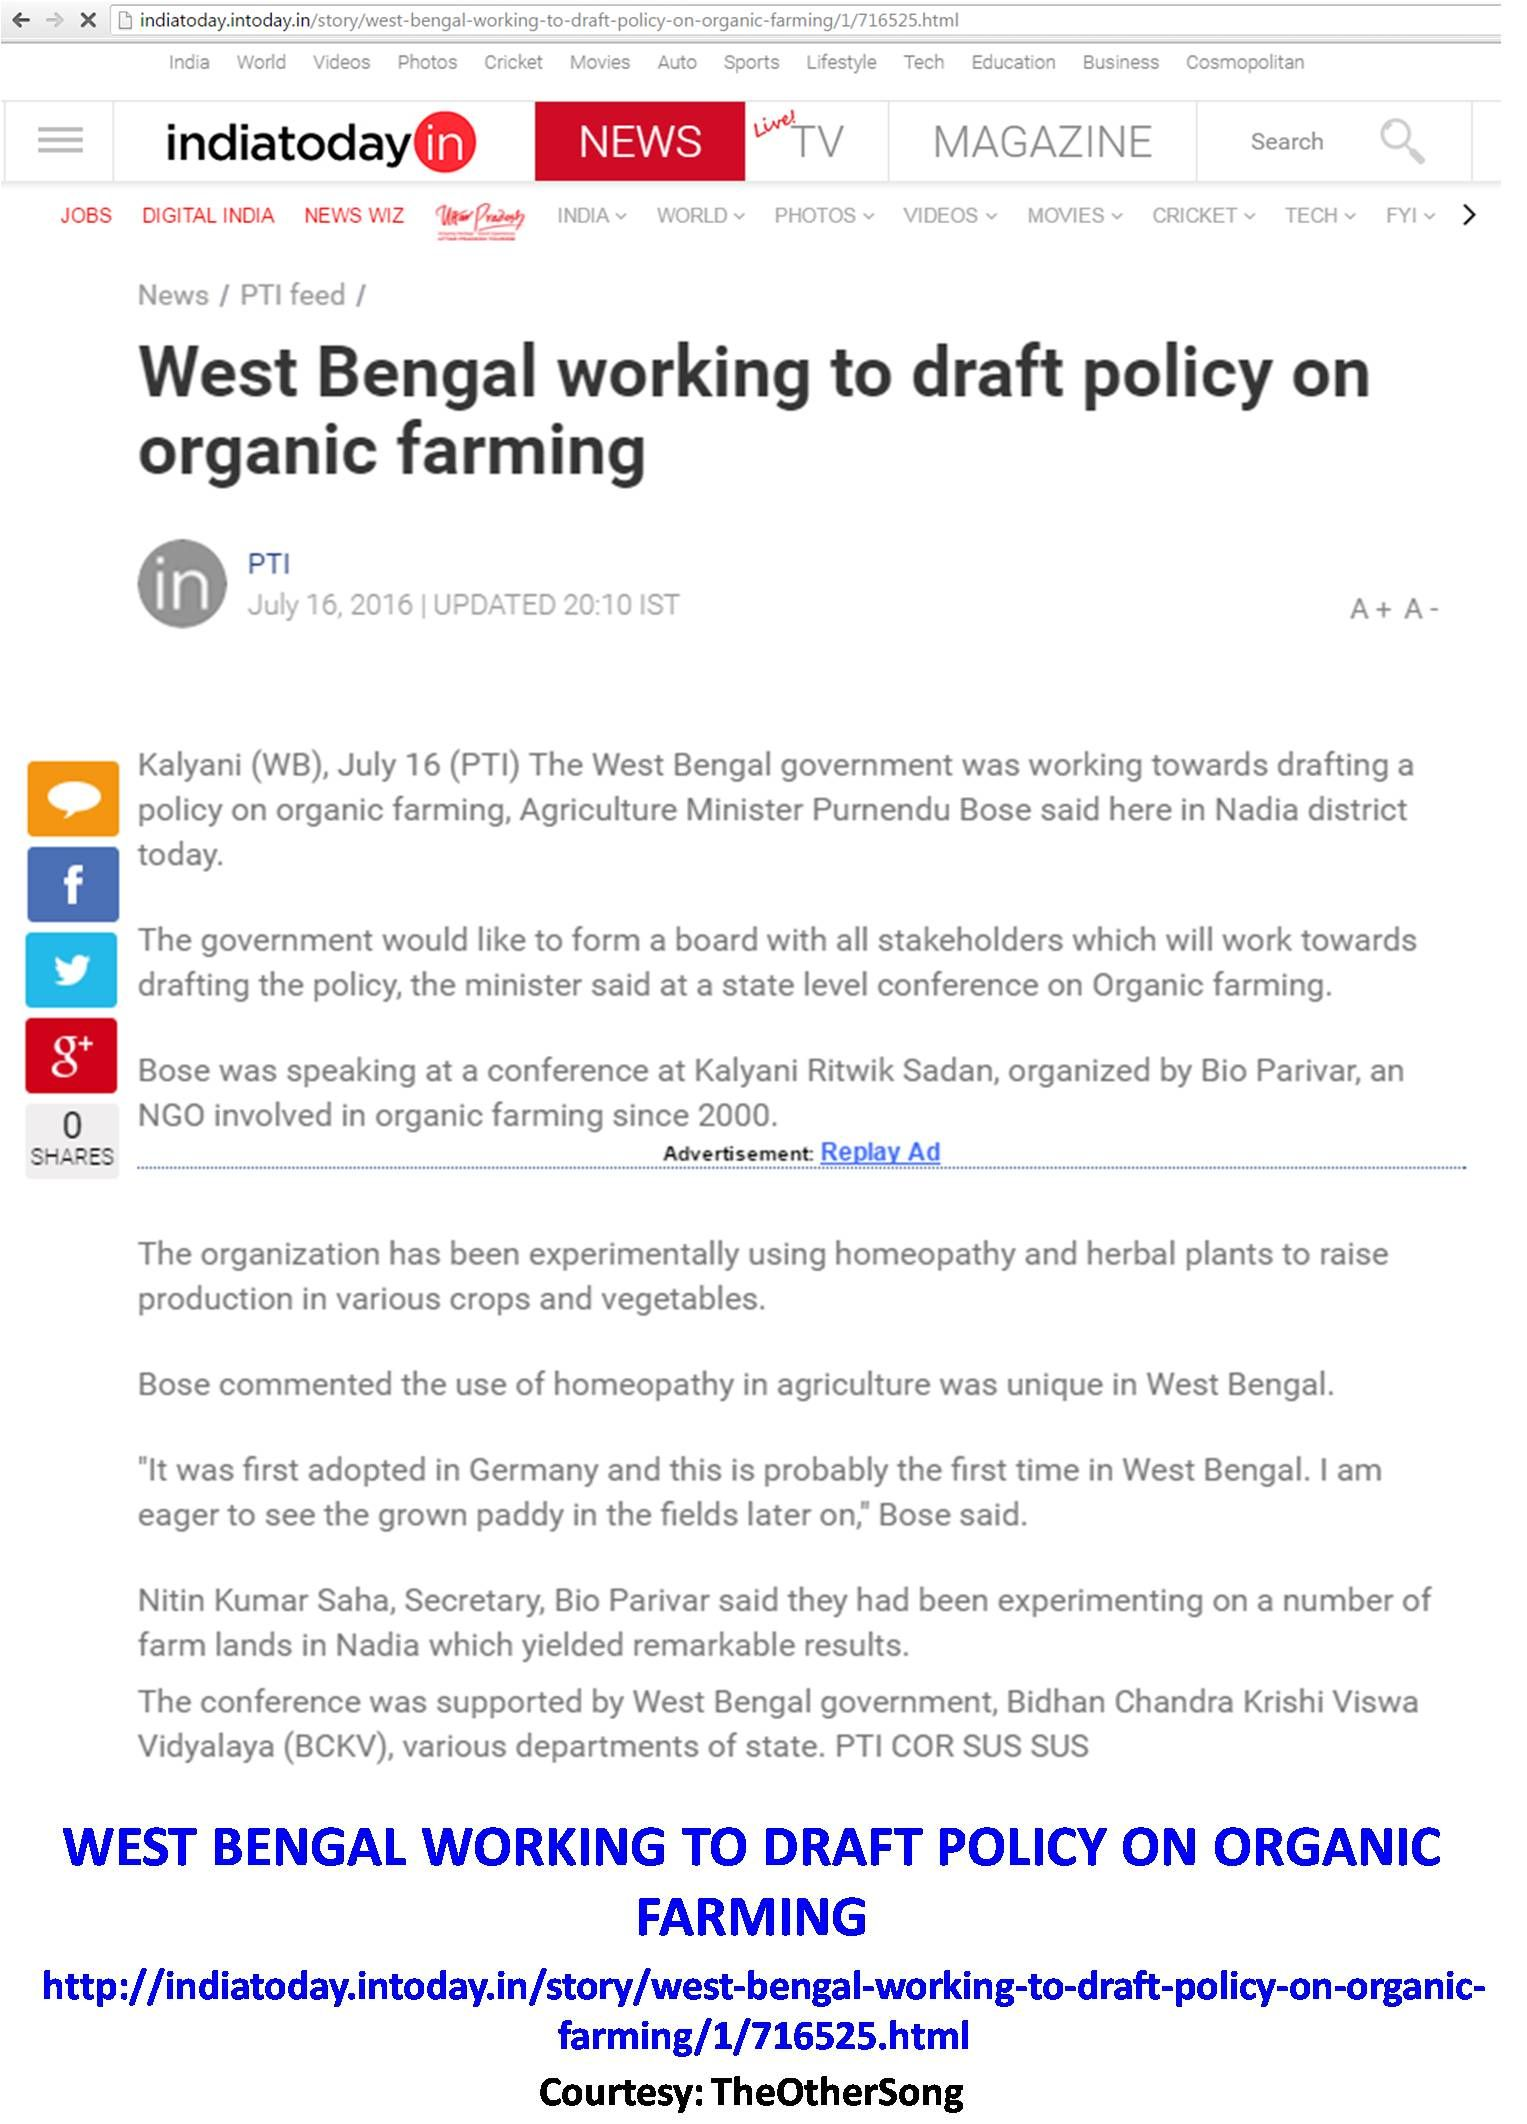 West Bengal working to draft policy on organic farming The organization has been experimentally using homeopathy and herbal plants to raise production in various crops and vegetables. http://indiatoday.intoday.in/story/west-bengal-working-to-draft-policy-on-organic-farming/1/716525.html